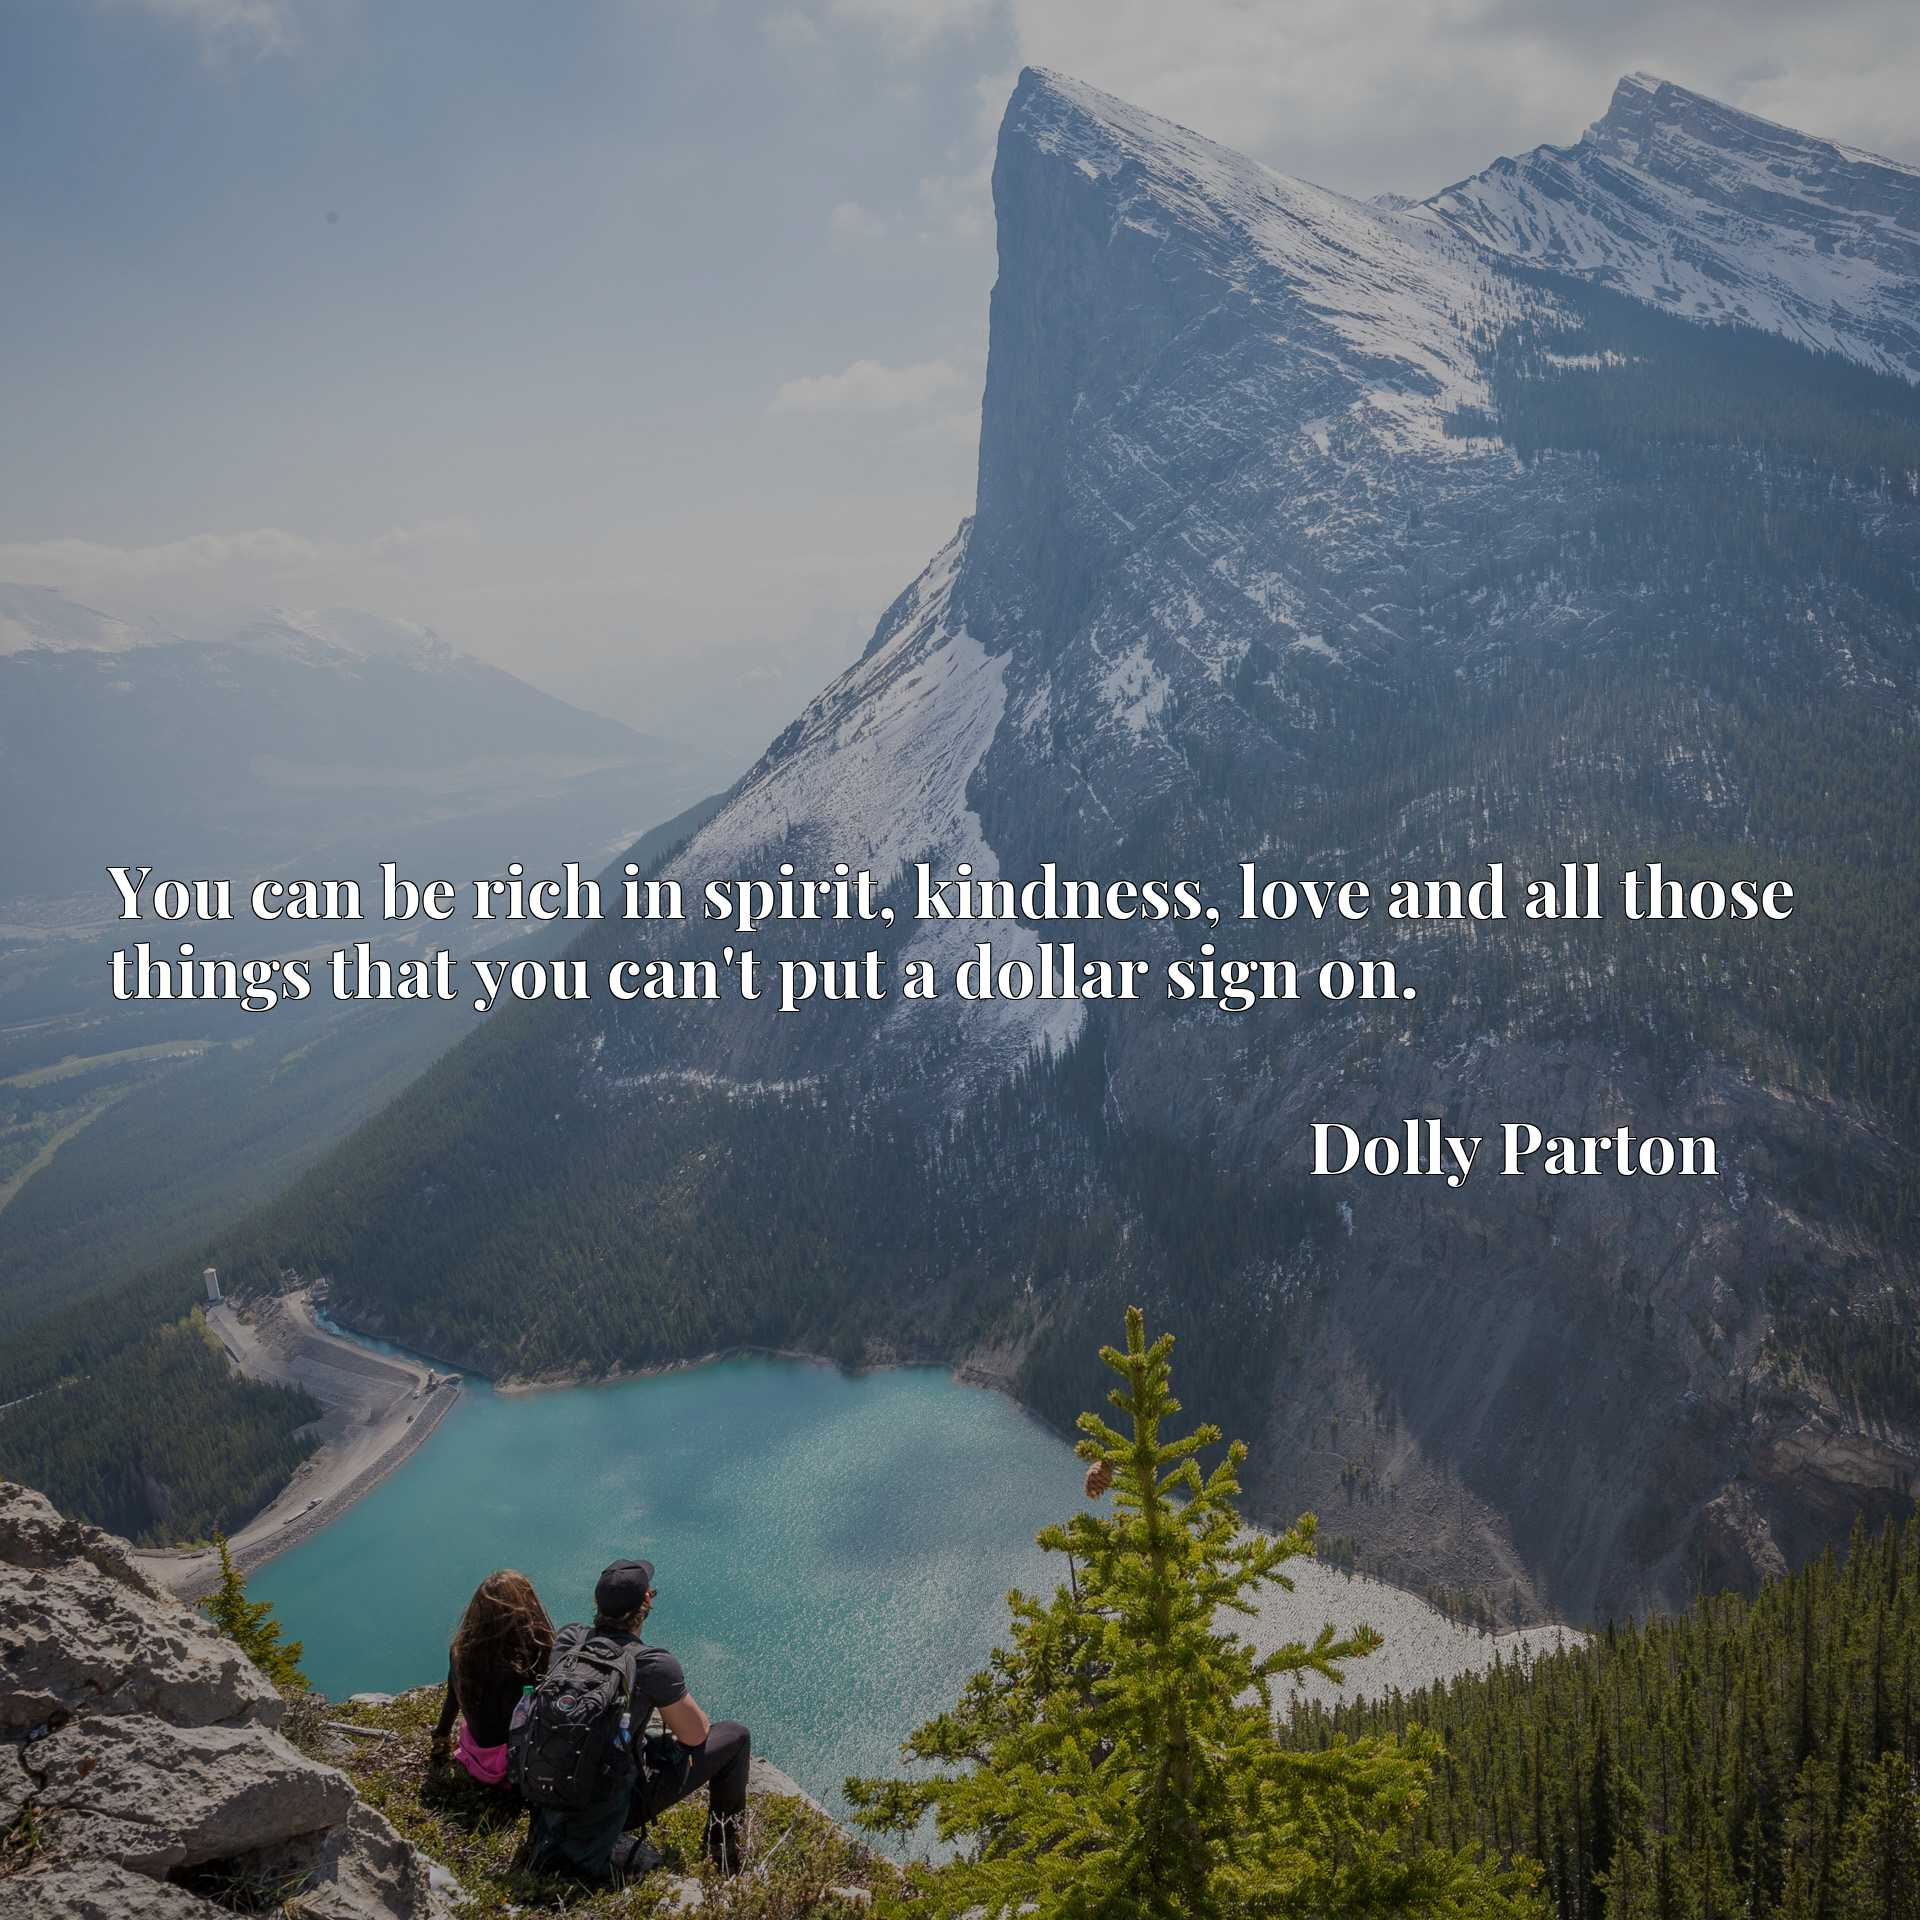 Quote Picture :You can be rich in spirit, kindness, love and all those things that you can't put a dollar sign on.